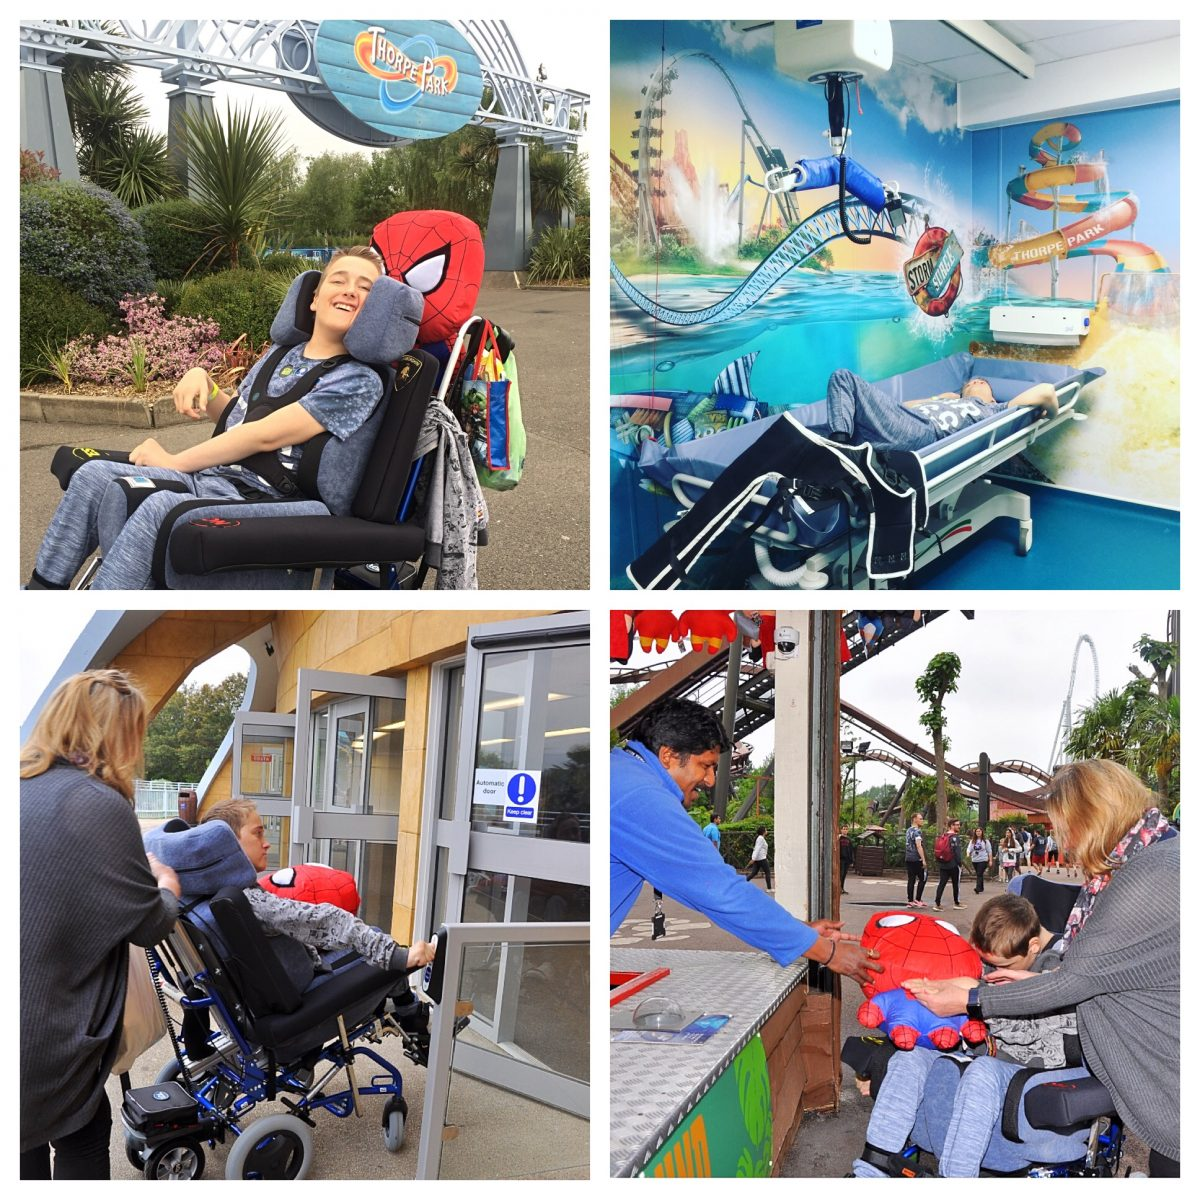 Assisted doors with a switch